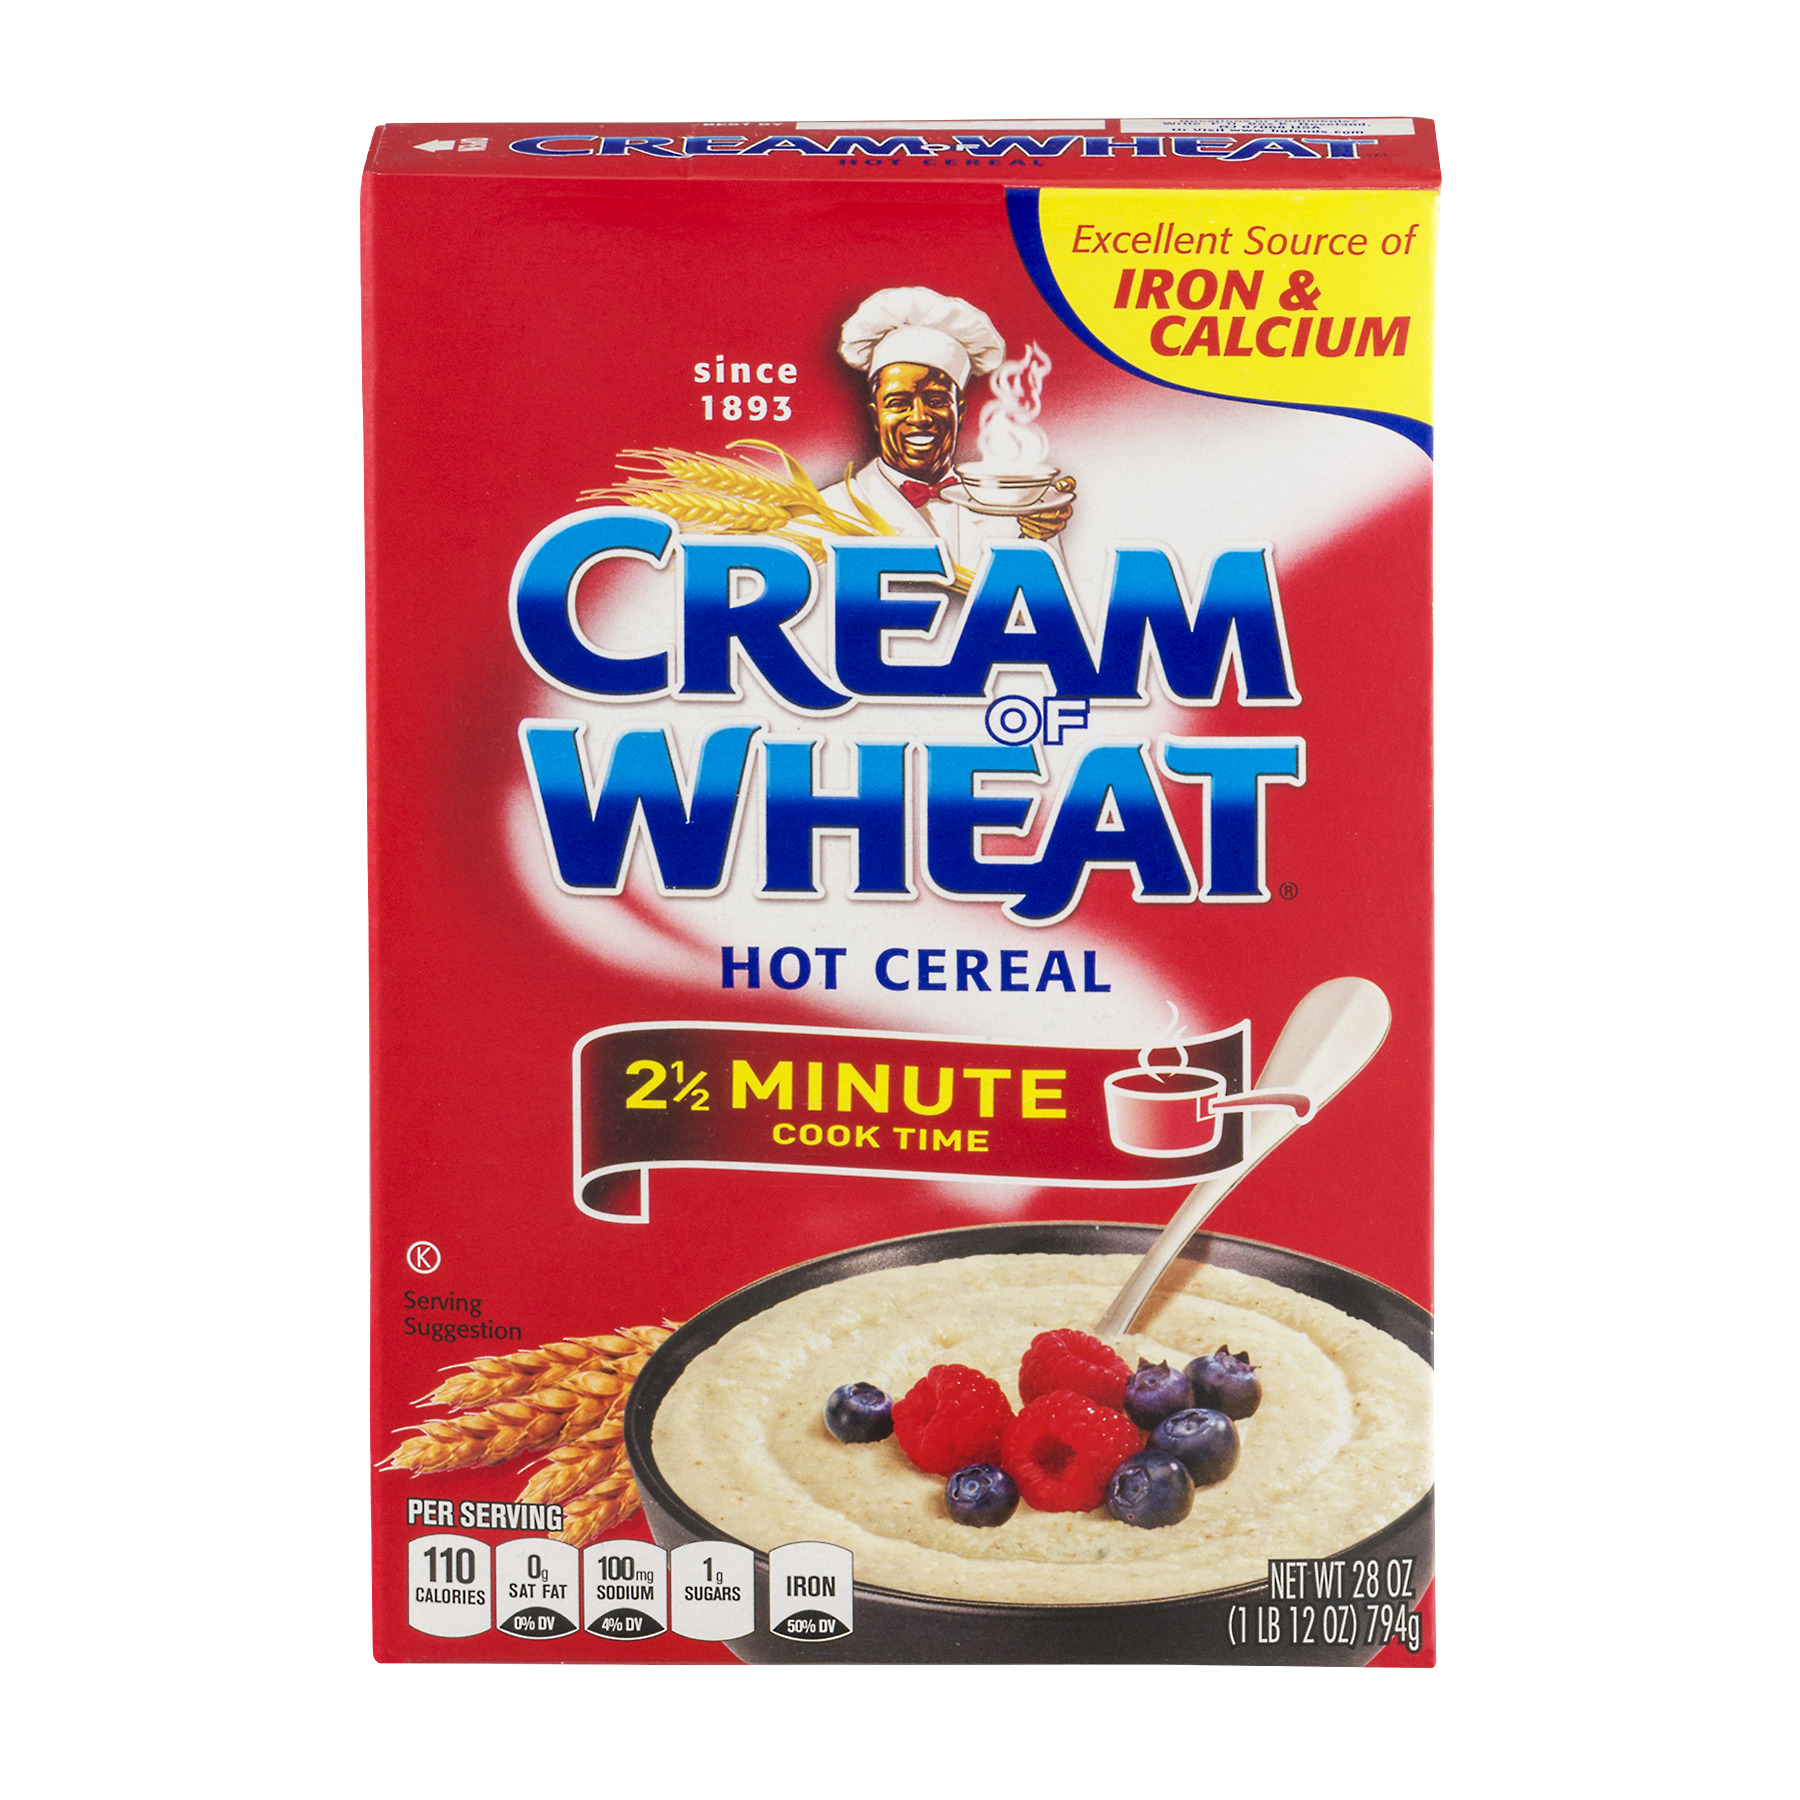 Cream Of Wheat 2 1/2 Minute Hot Cereal, Original, 28 Oz